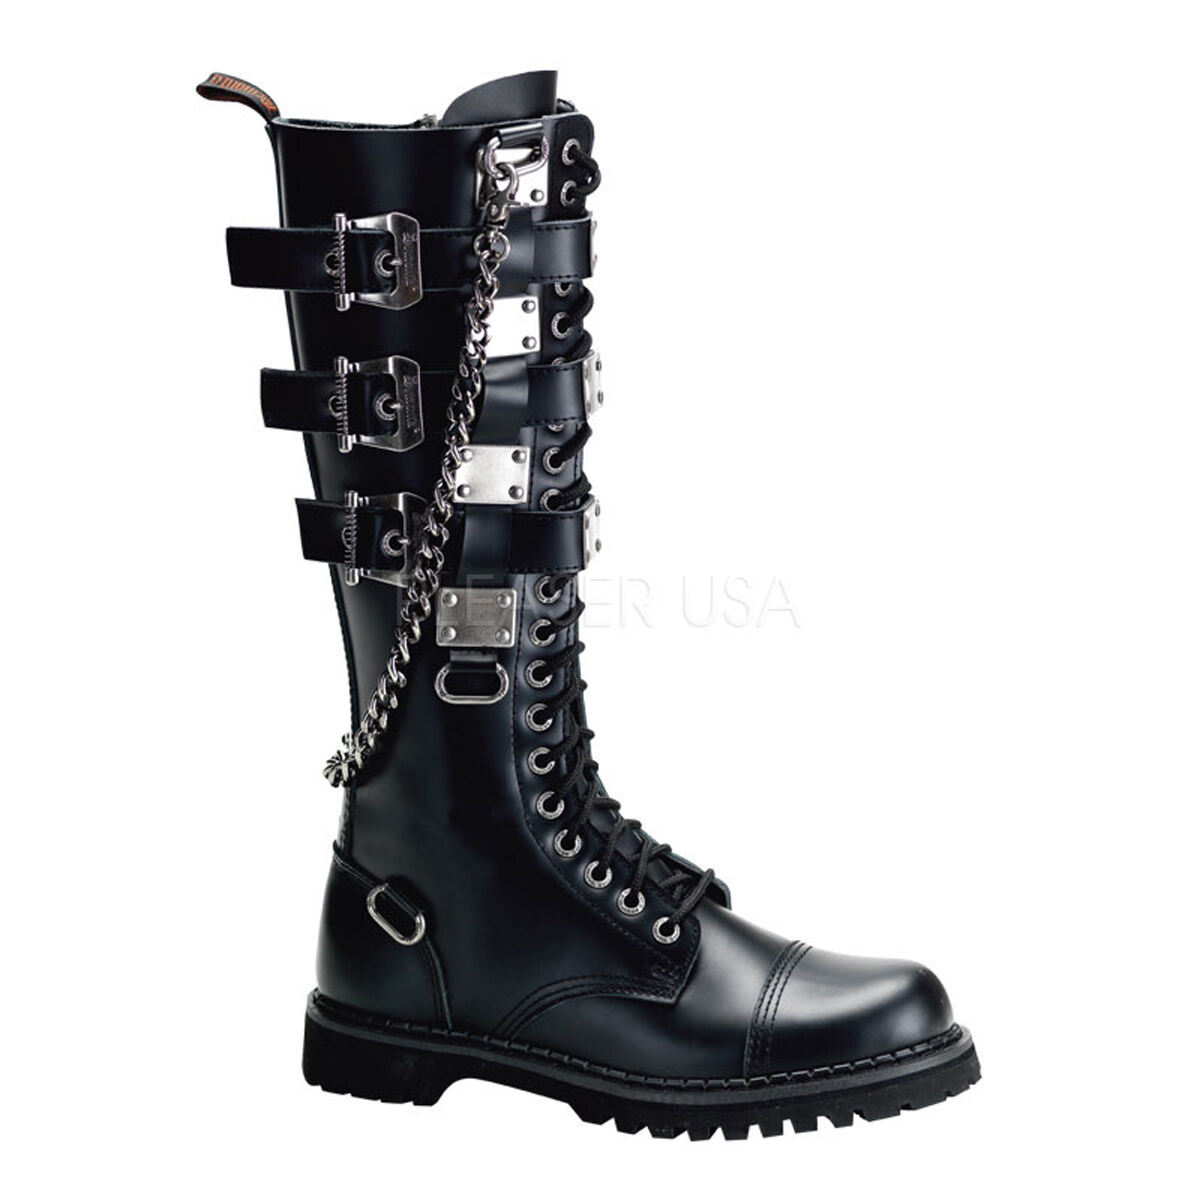 Demonia Gravel 23 Biker Unisex Goth 5 Punk Leather Negro botas 5 Goth Buckle Lace Up b67d45